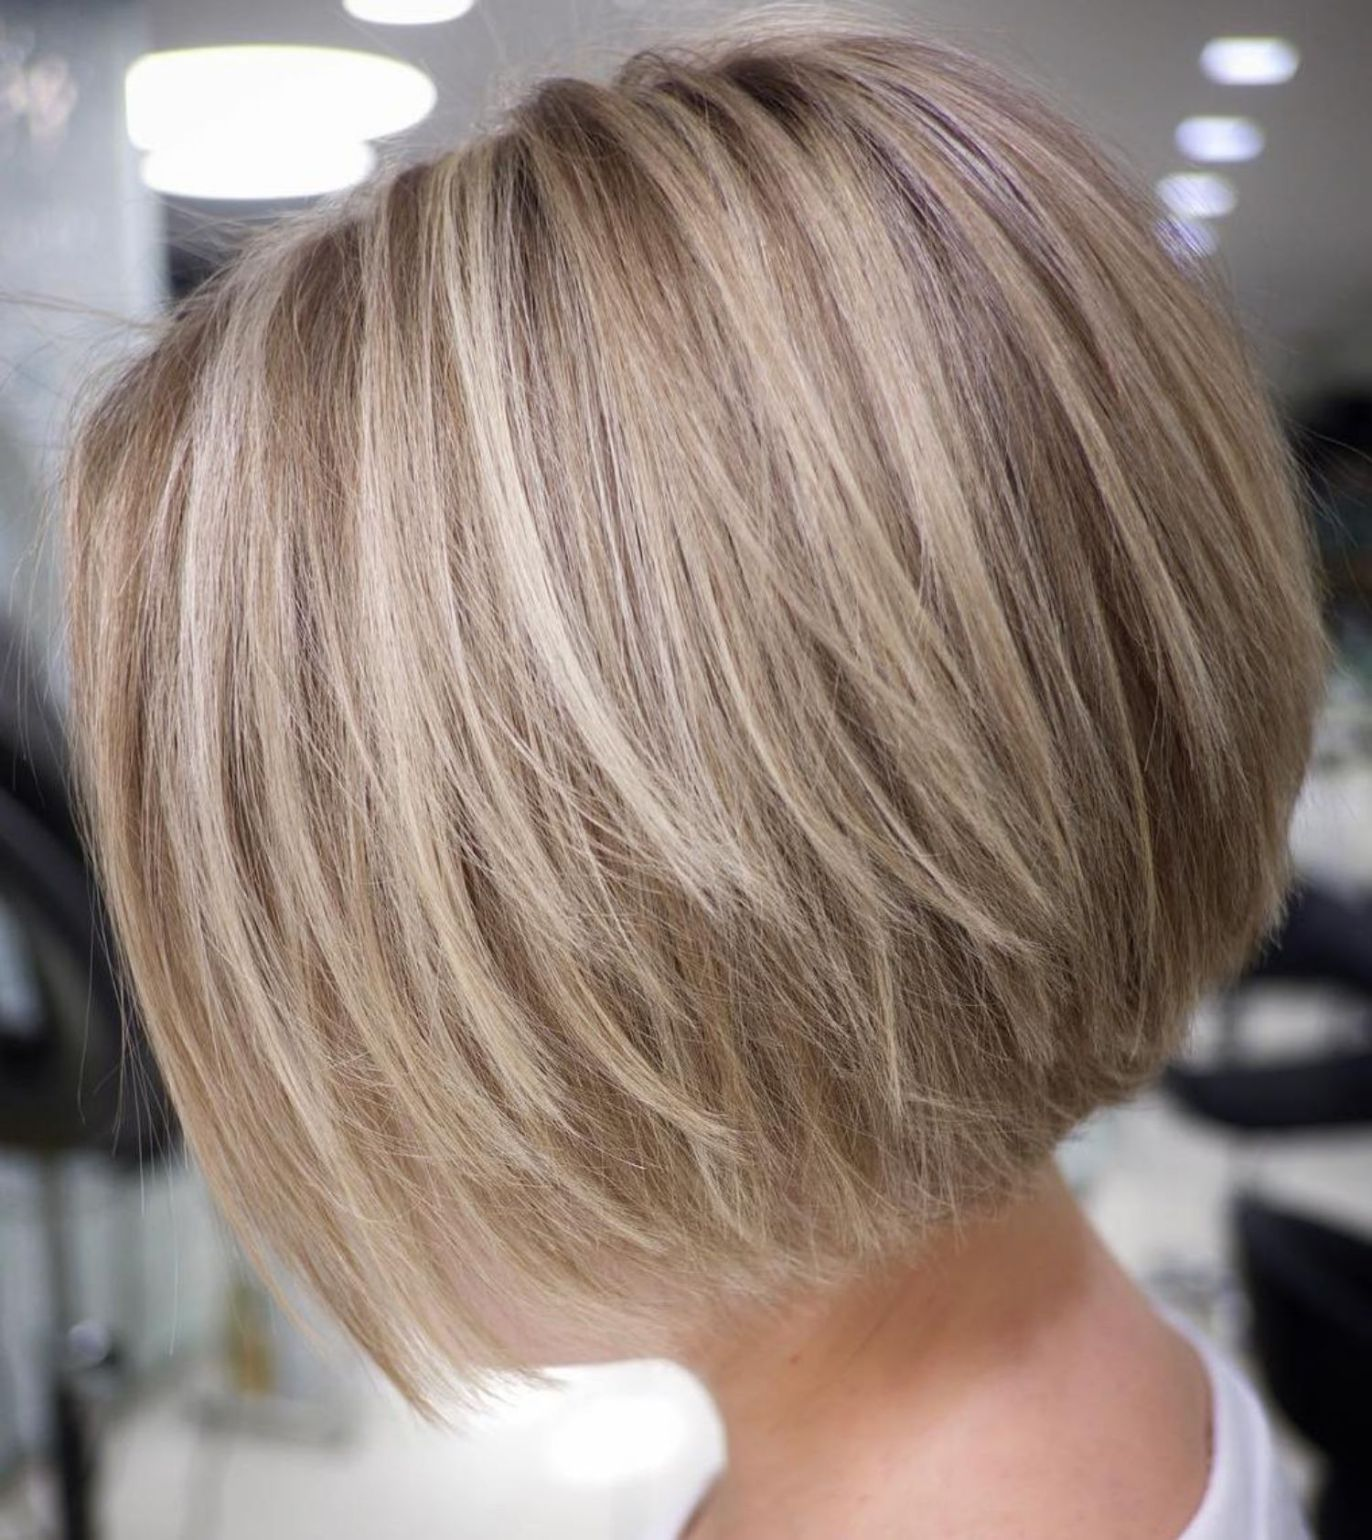 Straight Textured Creamy Blonde Bob Short Hair With Layers Thick Hair Styles Bobs For Thin Hair